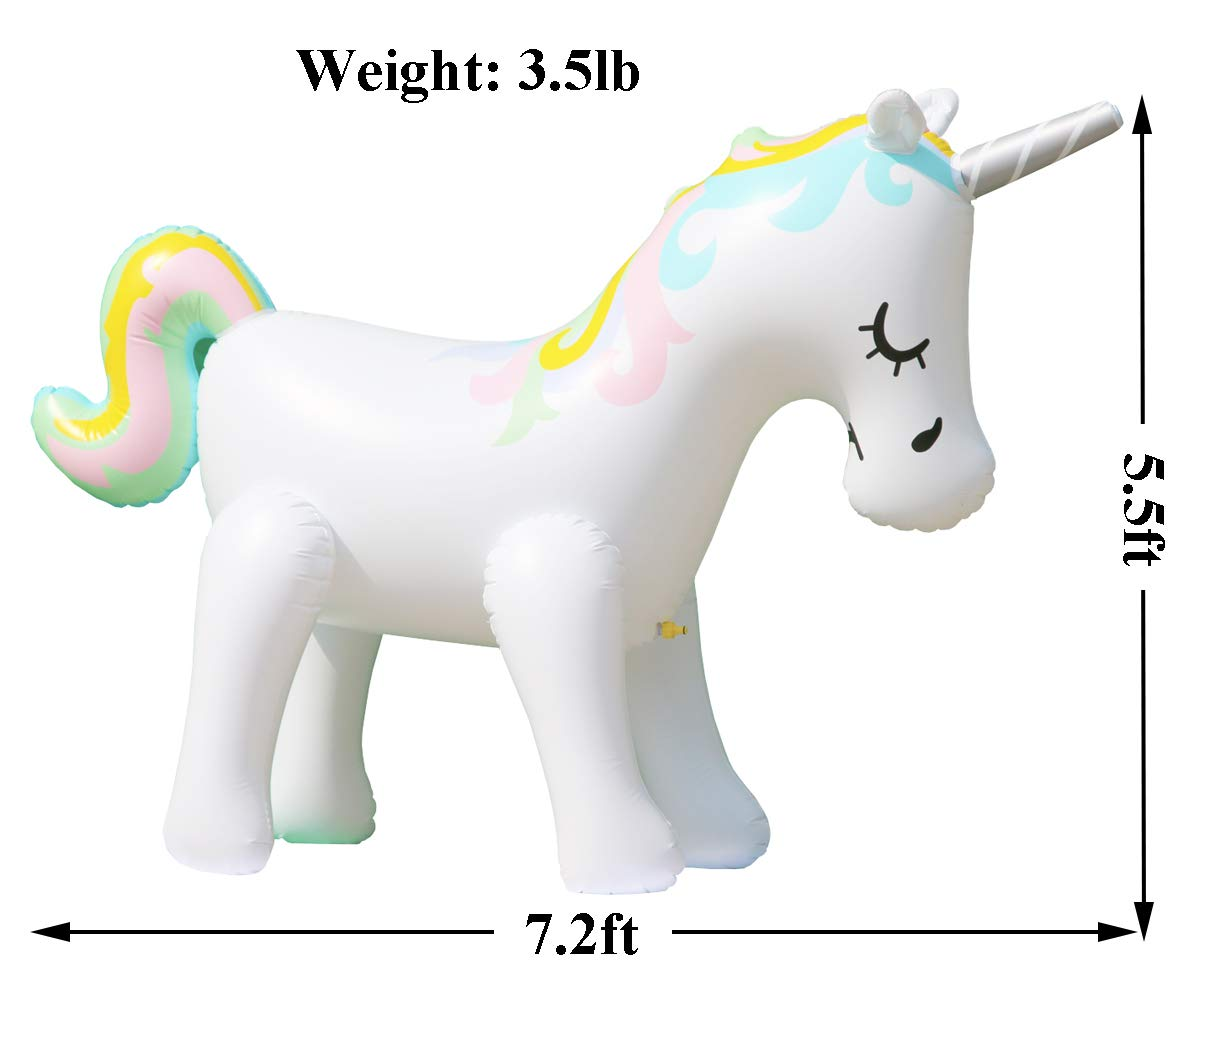 LANGXUN Ginormous Inflatable Unicorn Yard Sprinkler Toy for Kids, Perfect for Unicorn Party Supplies & Outdoor Summer… 4